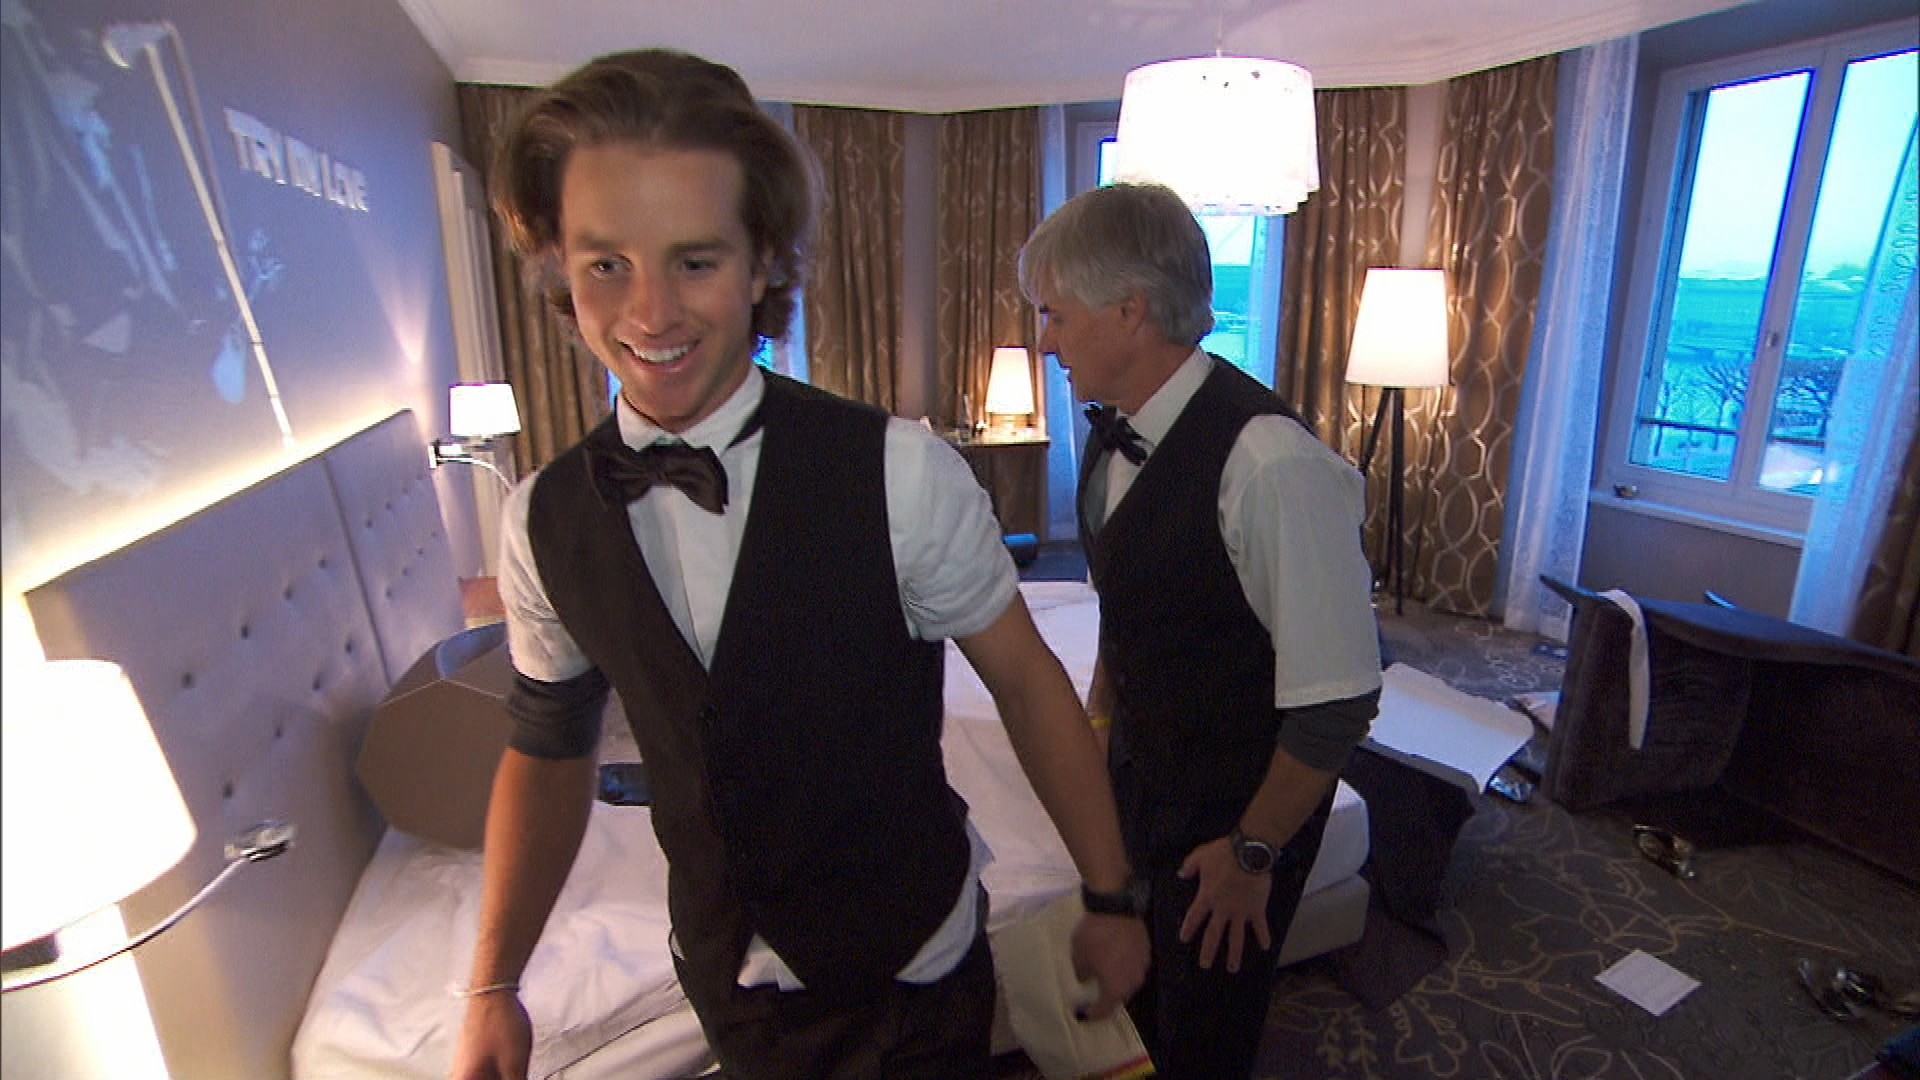 Cleaning hotel rooms in Season 24 Episode 9